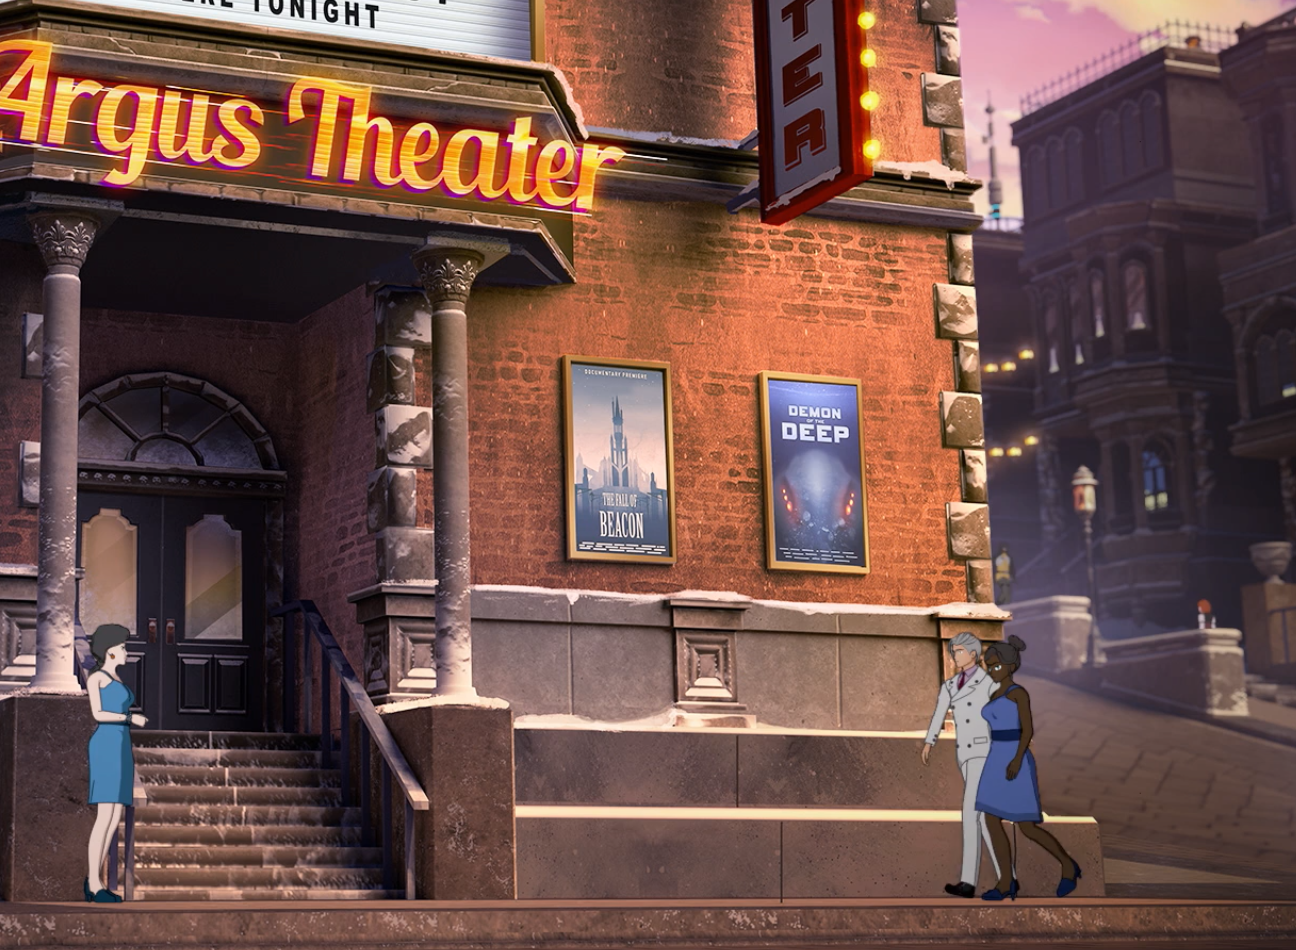 Argus Theater is now showing; The Fall of Beacon the Movie